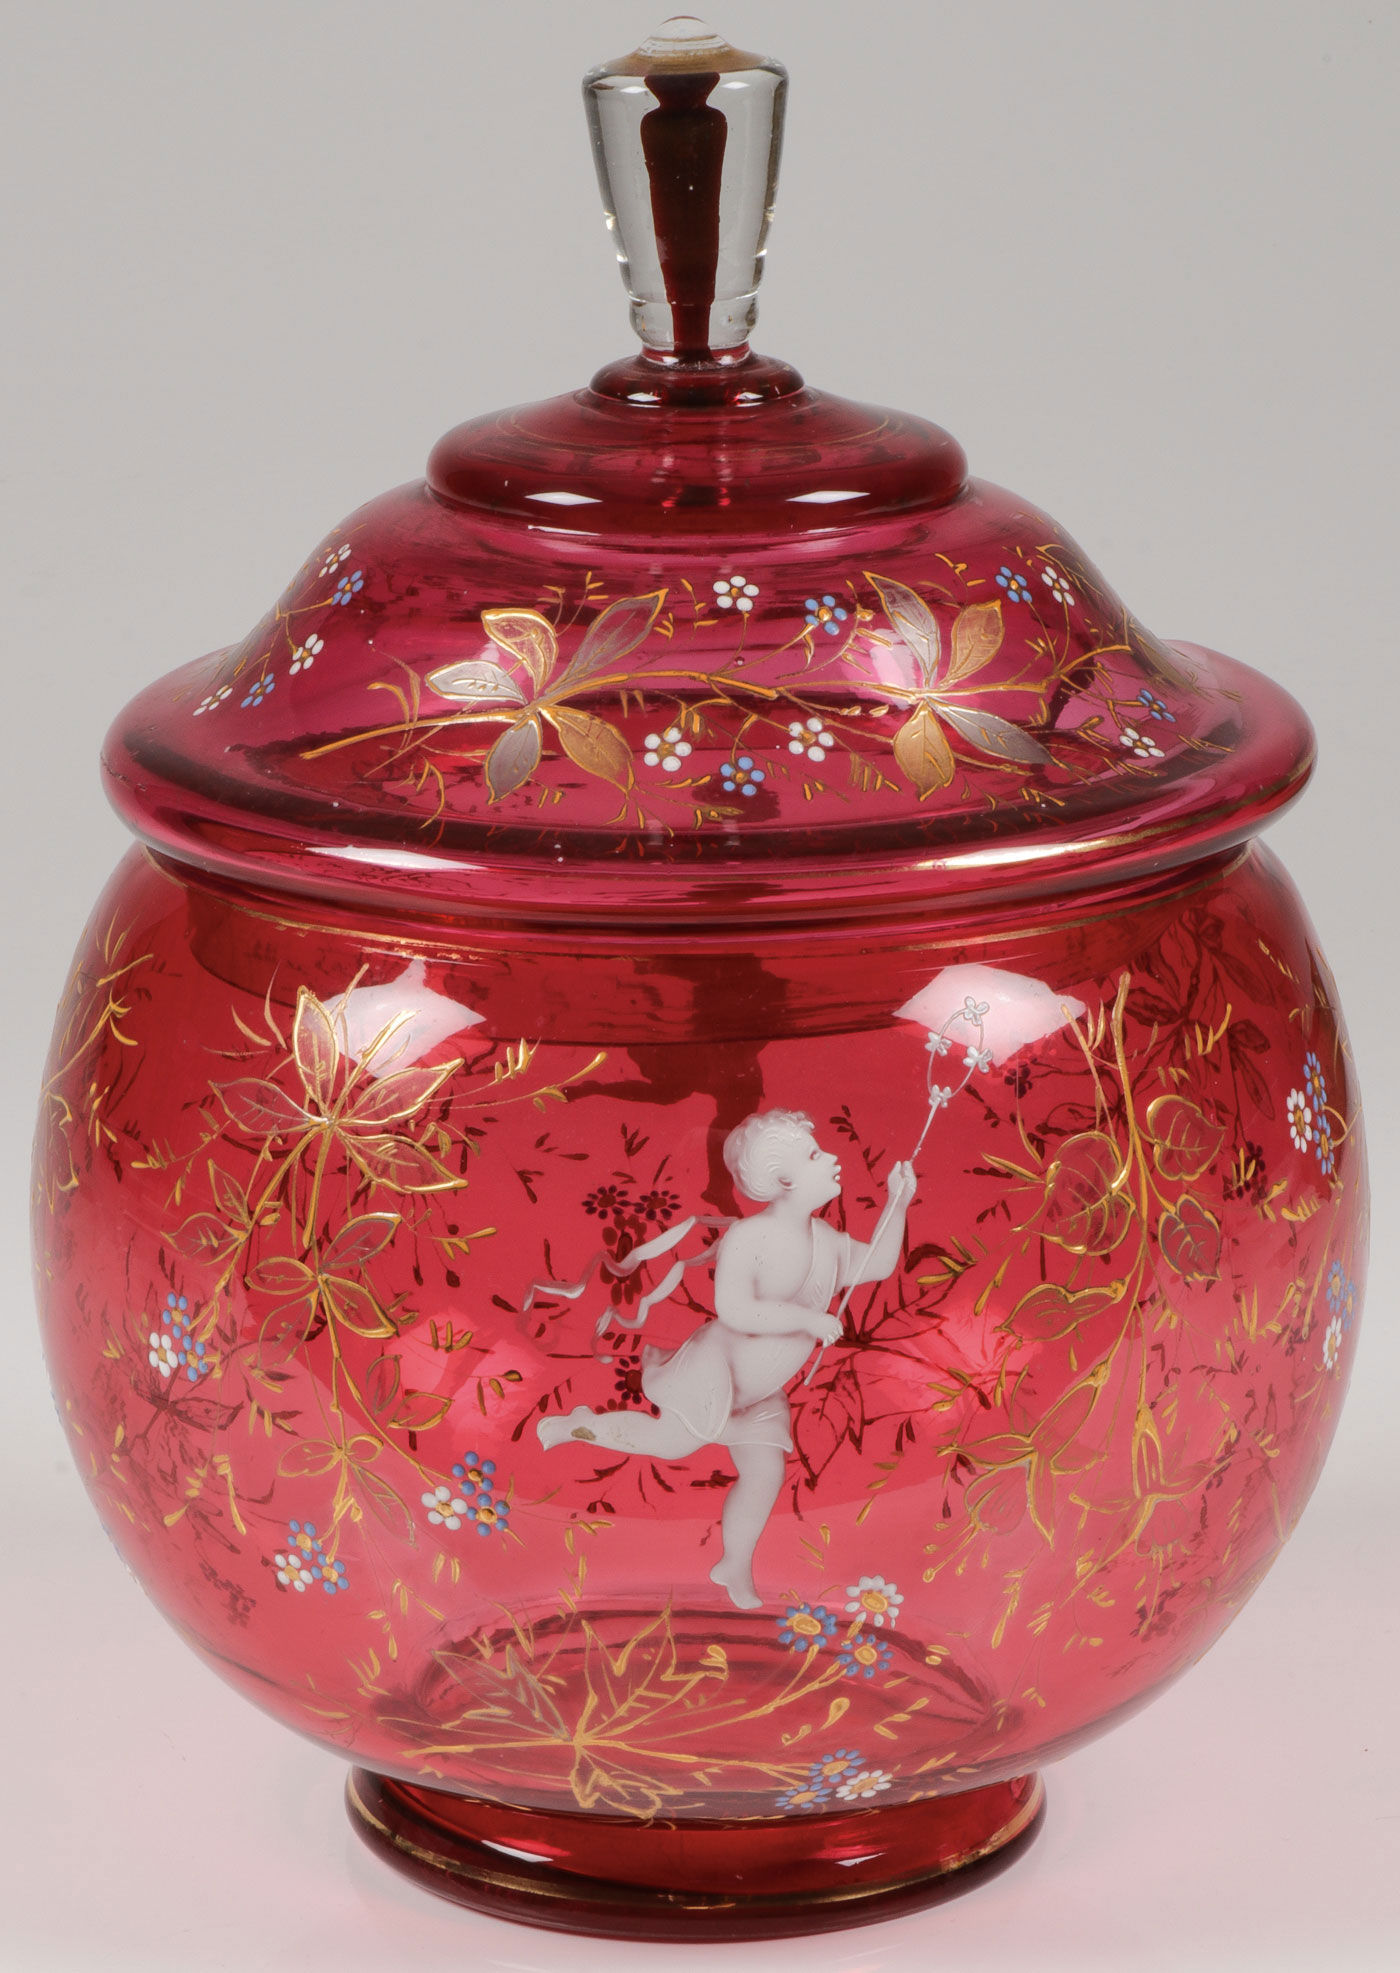 Lot 17 - MARY GREGORY CRANBERRY PUNCH SET